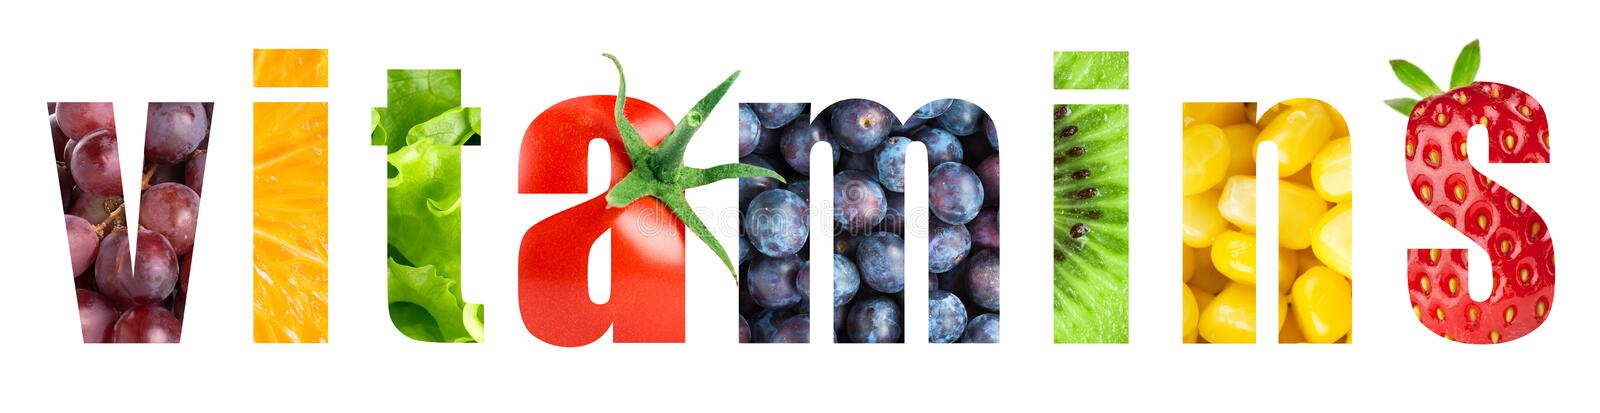 Vitamins. Word on white background. Fresh fruits and vegetables